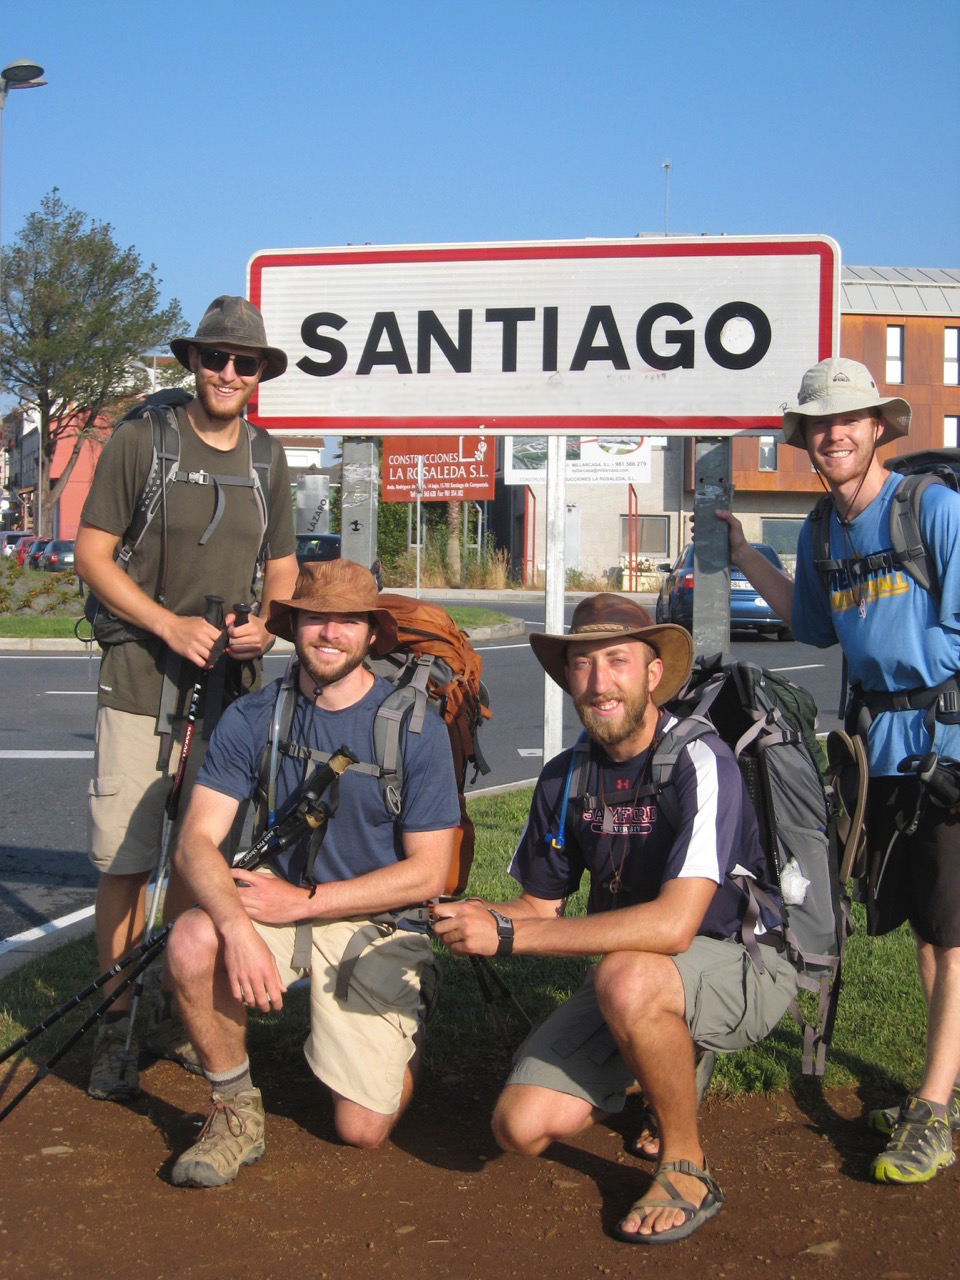 Hunter arrives with his friends after walking 500 miles in sandals. This is his report.